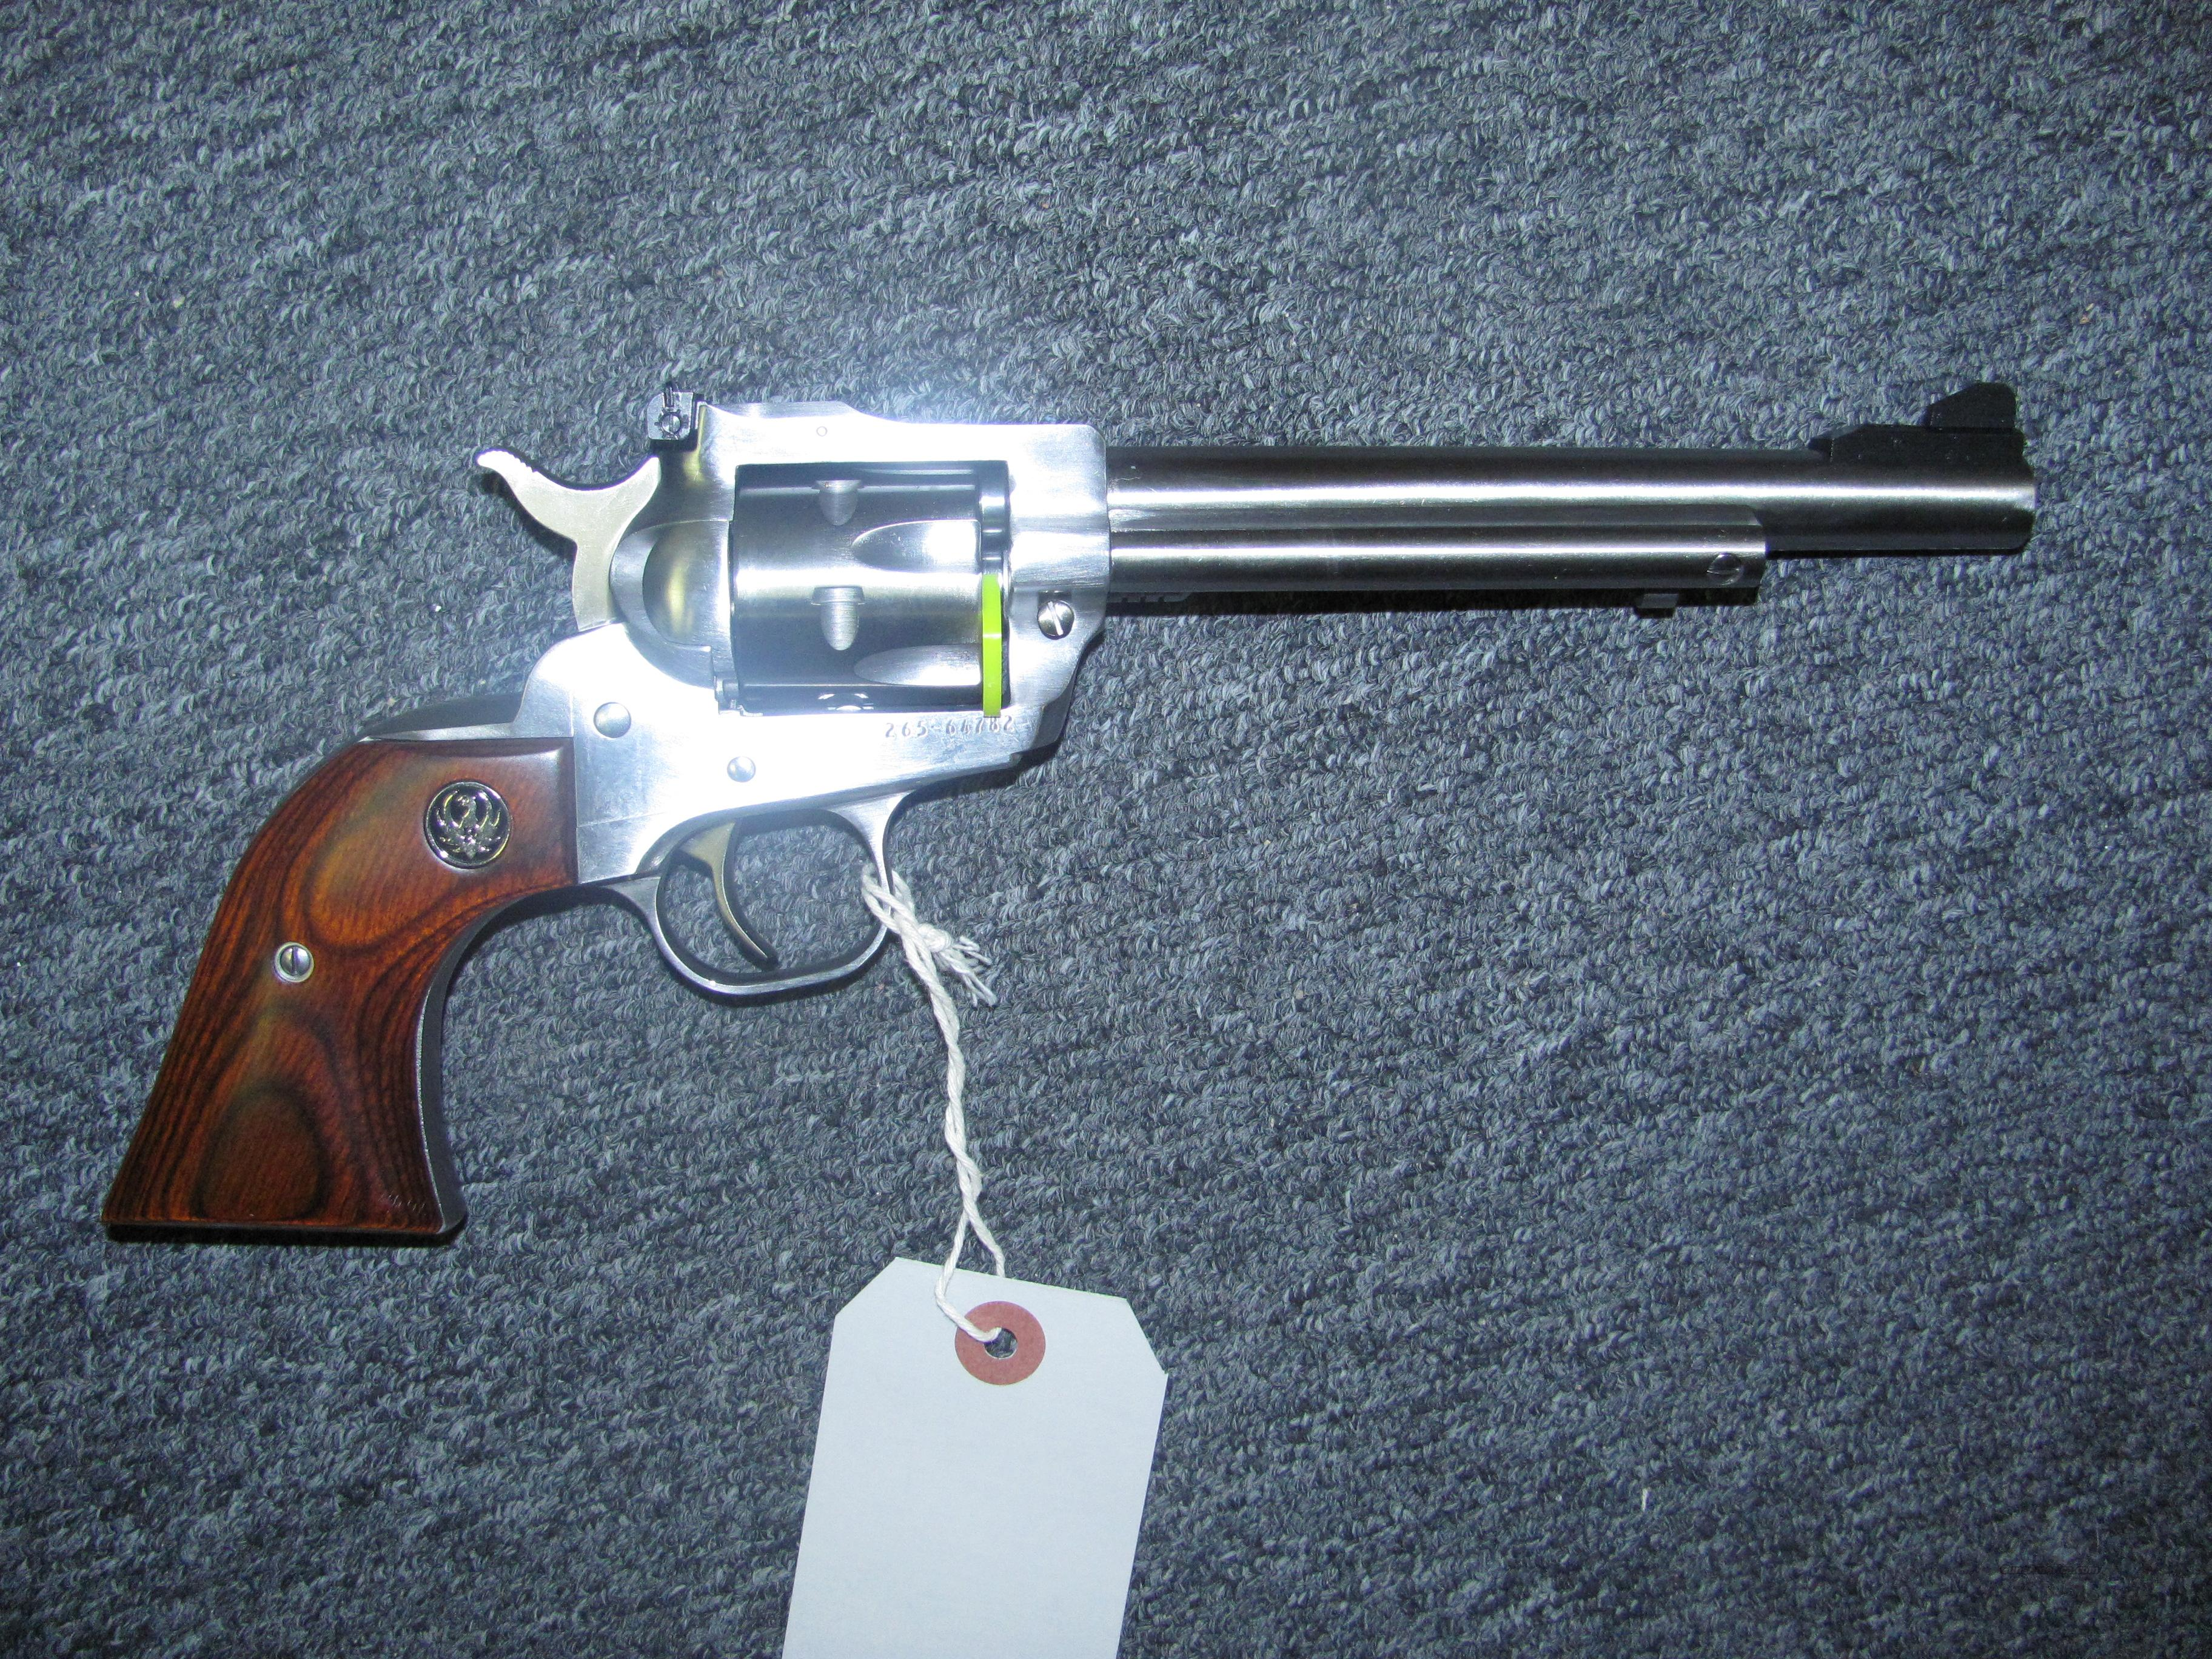 New Model Single Six w/2 cylinders  Guns > Pistols > Ruger Single Action Revolvers > Single Six Type